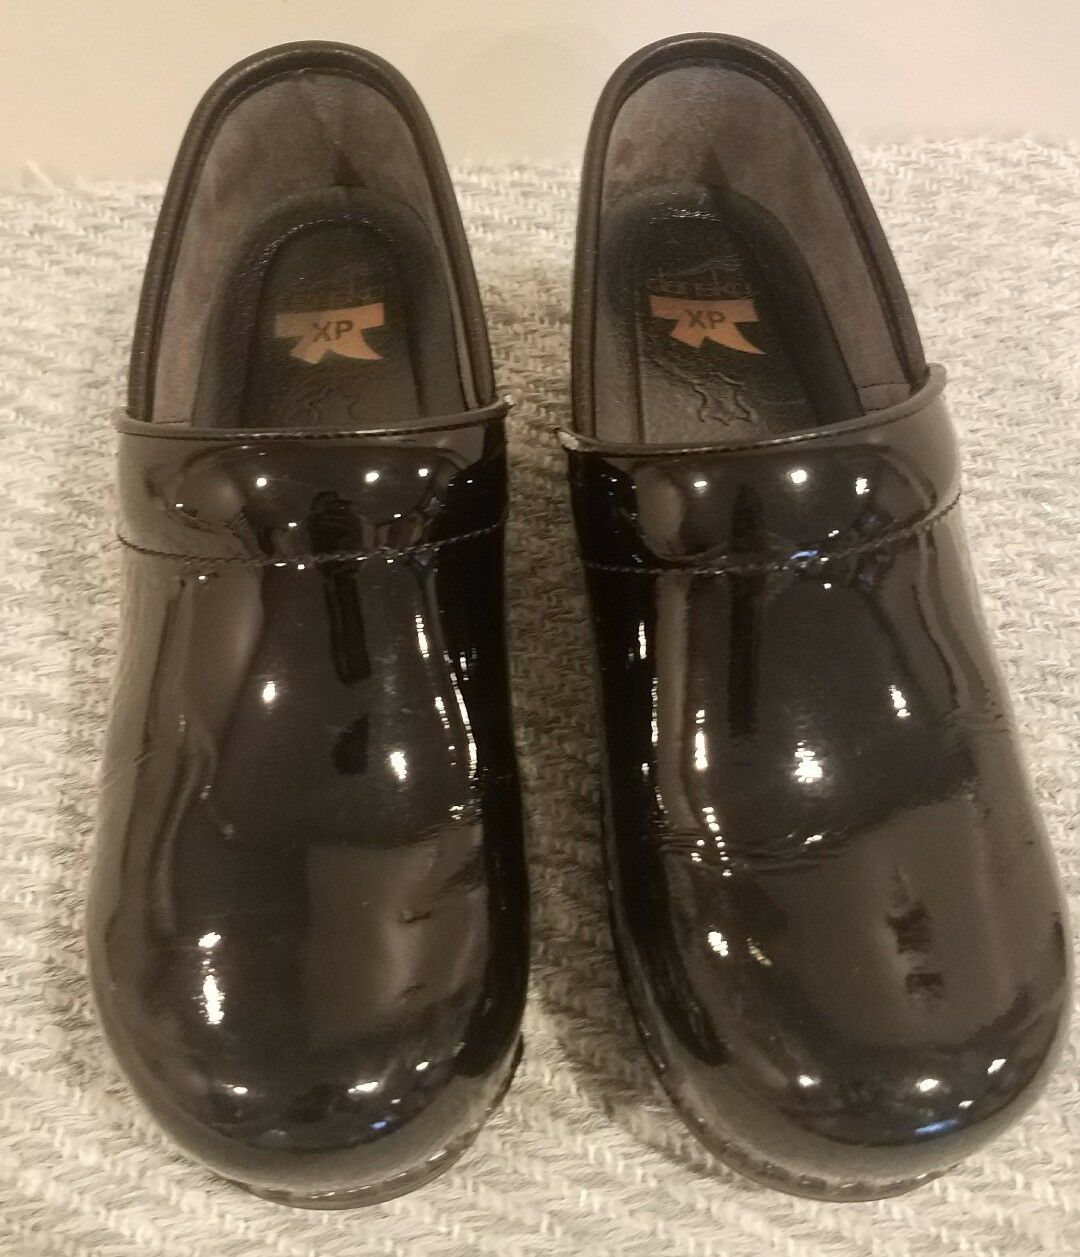 Dansko PROFESSIONAL PATENT BLACK Womens Leather Slip On Clog Shoes Size 38